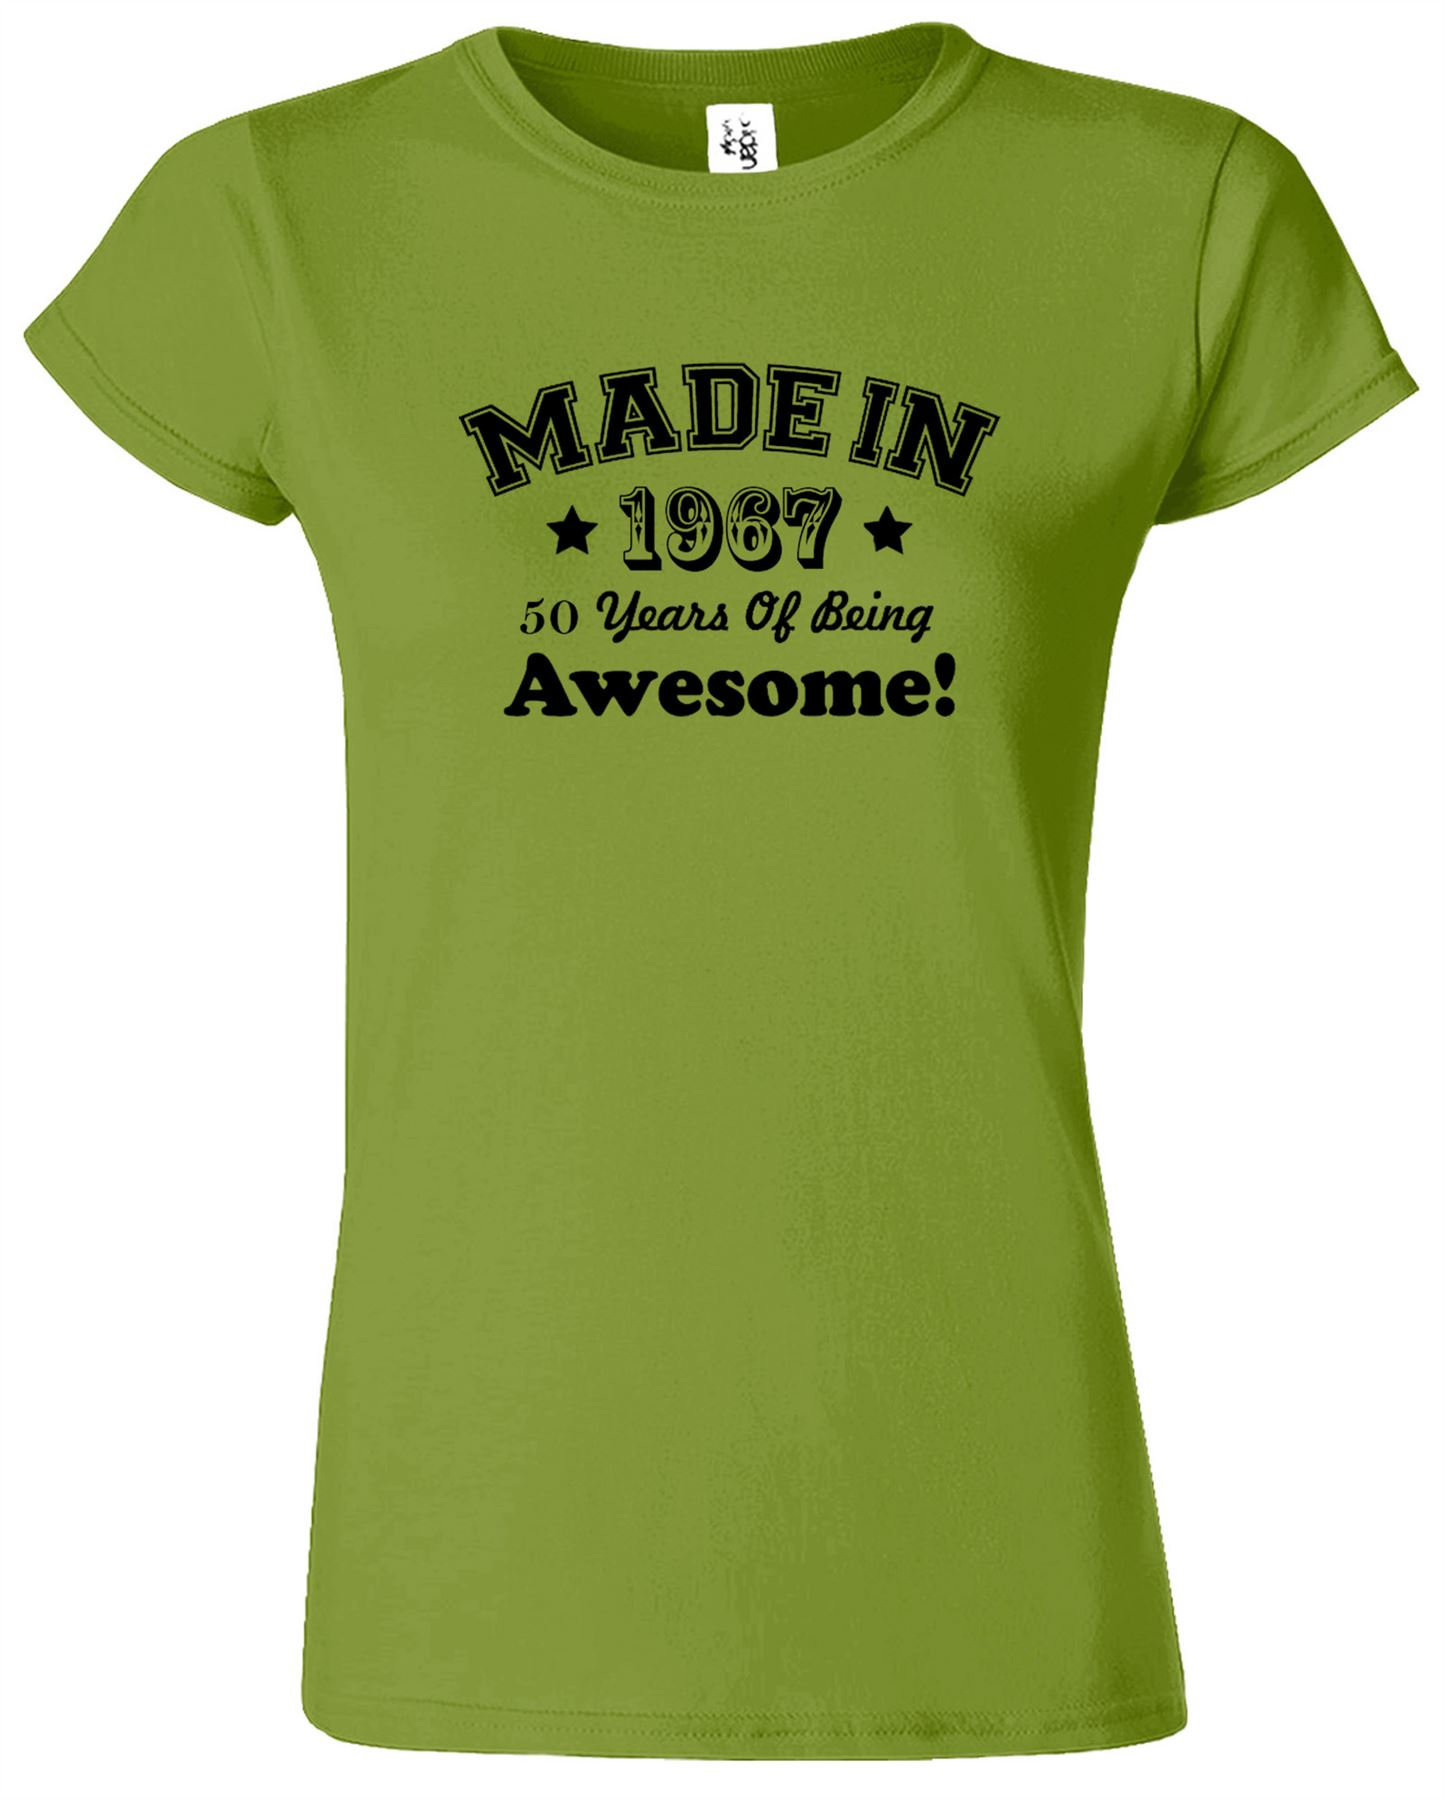 MADE IN 1967 Ladies Fitted TShirt 50 Years Of Being Awesome TShirt Gift